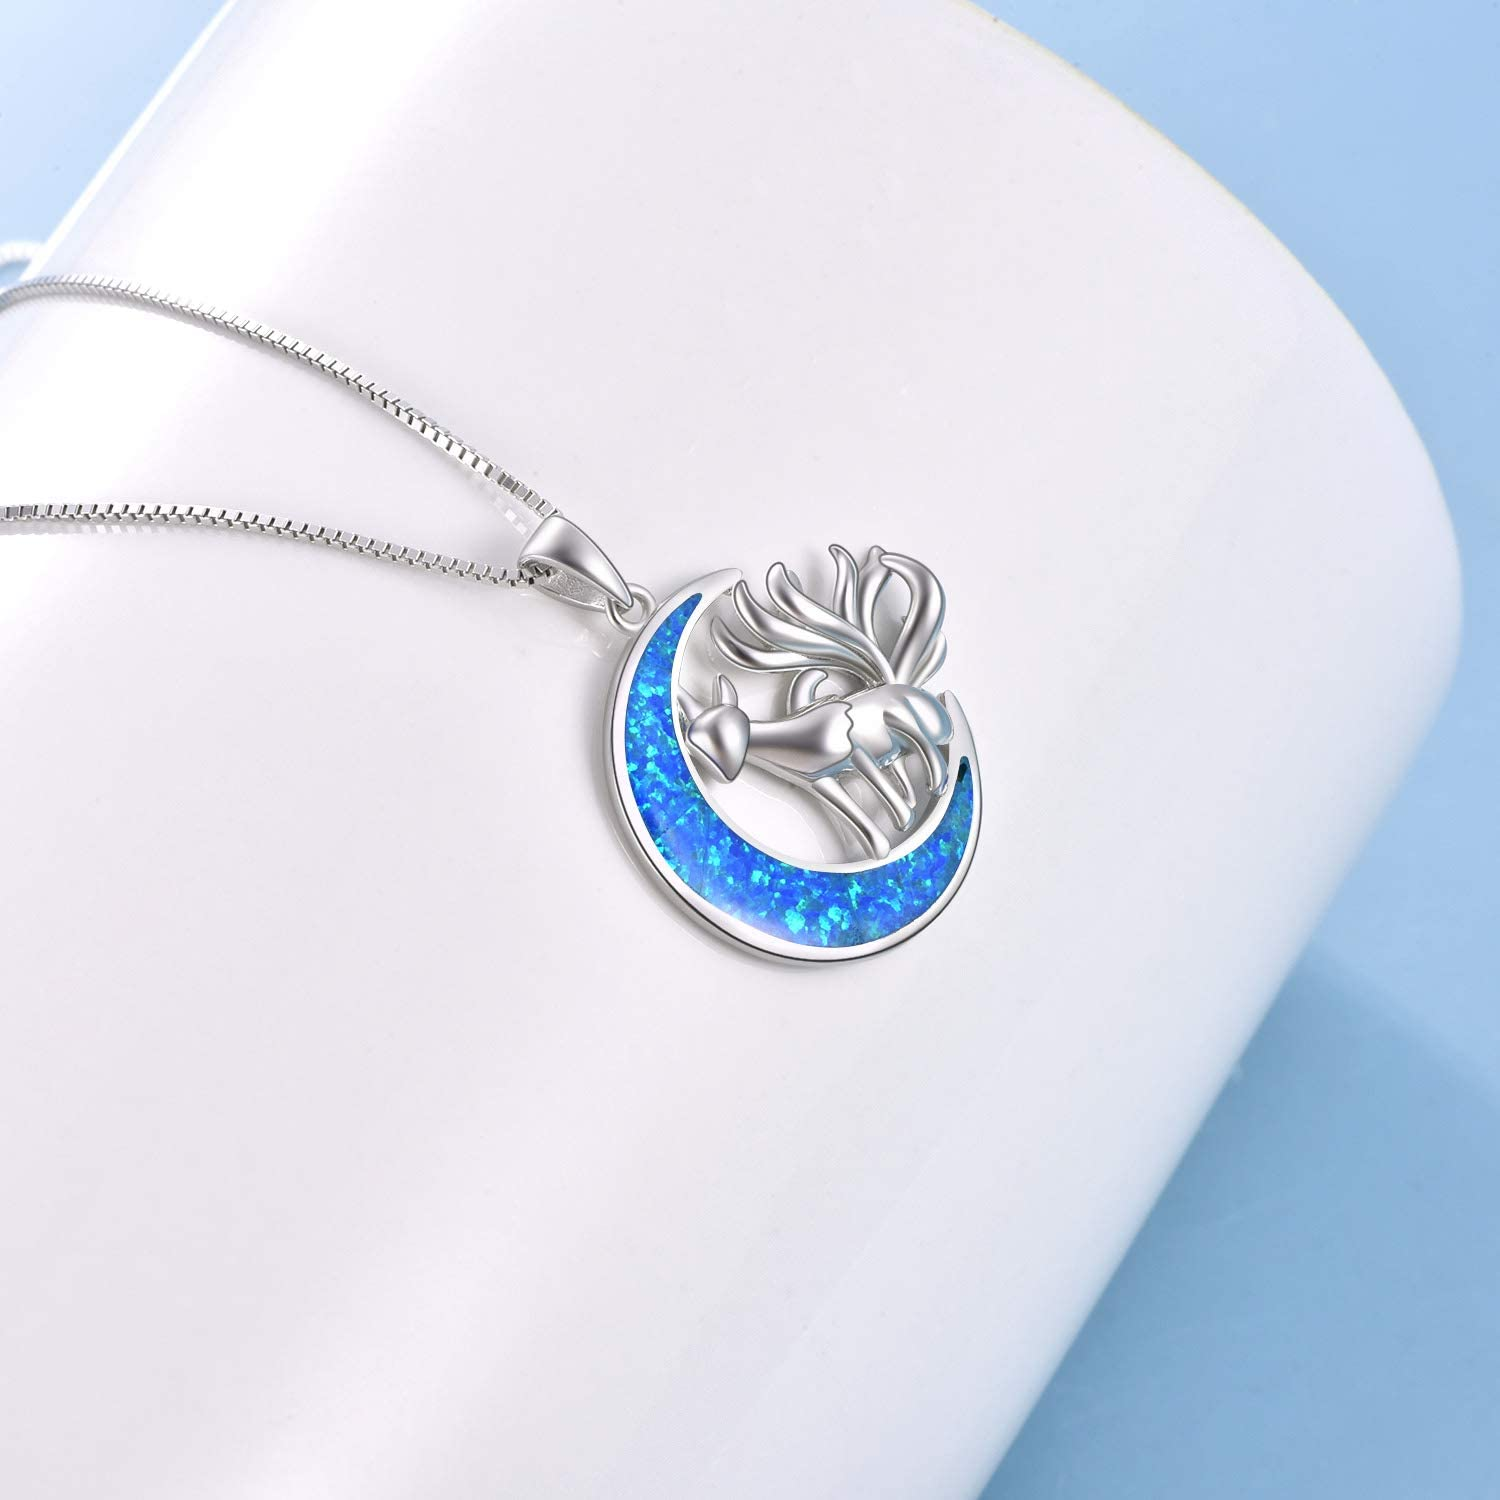 Smile Necklace for healing Tradition Mask Jewelry Korean Mask Necklace in Sterling Silver Silver Necklace